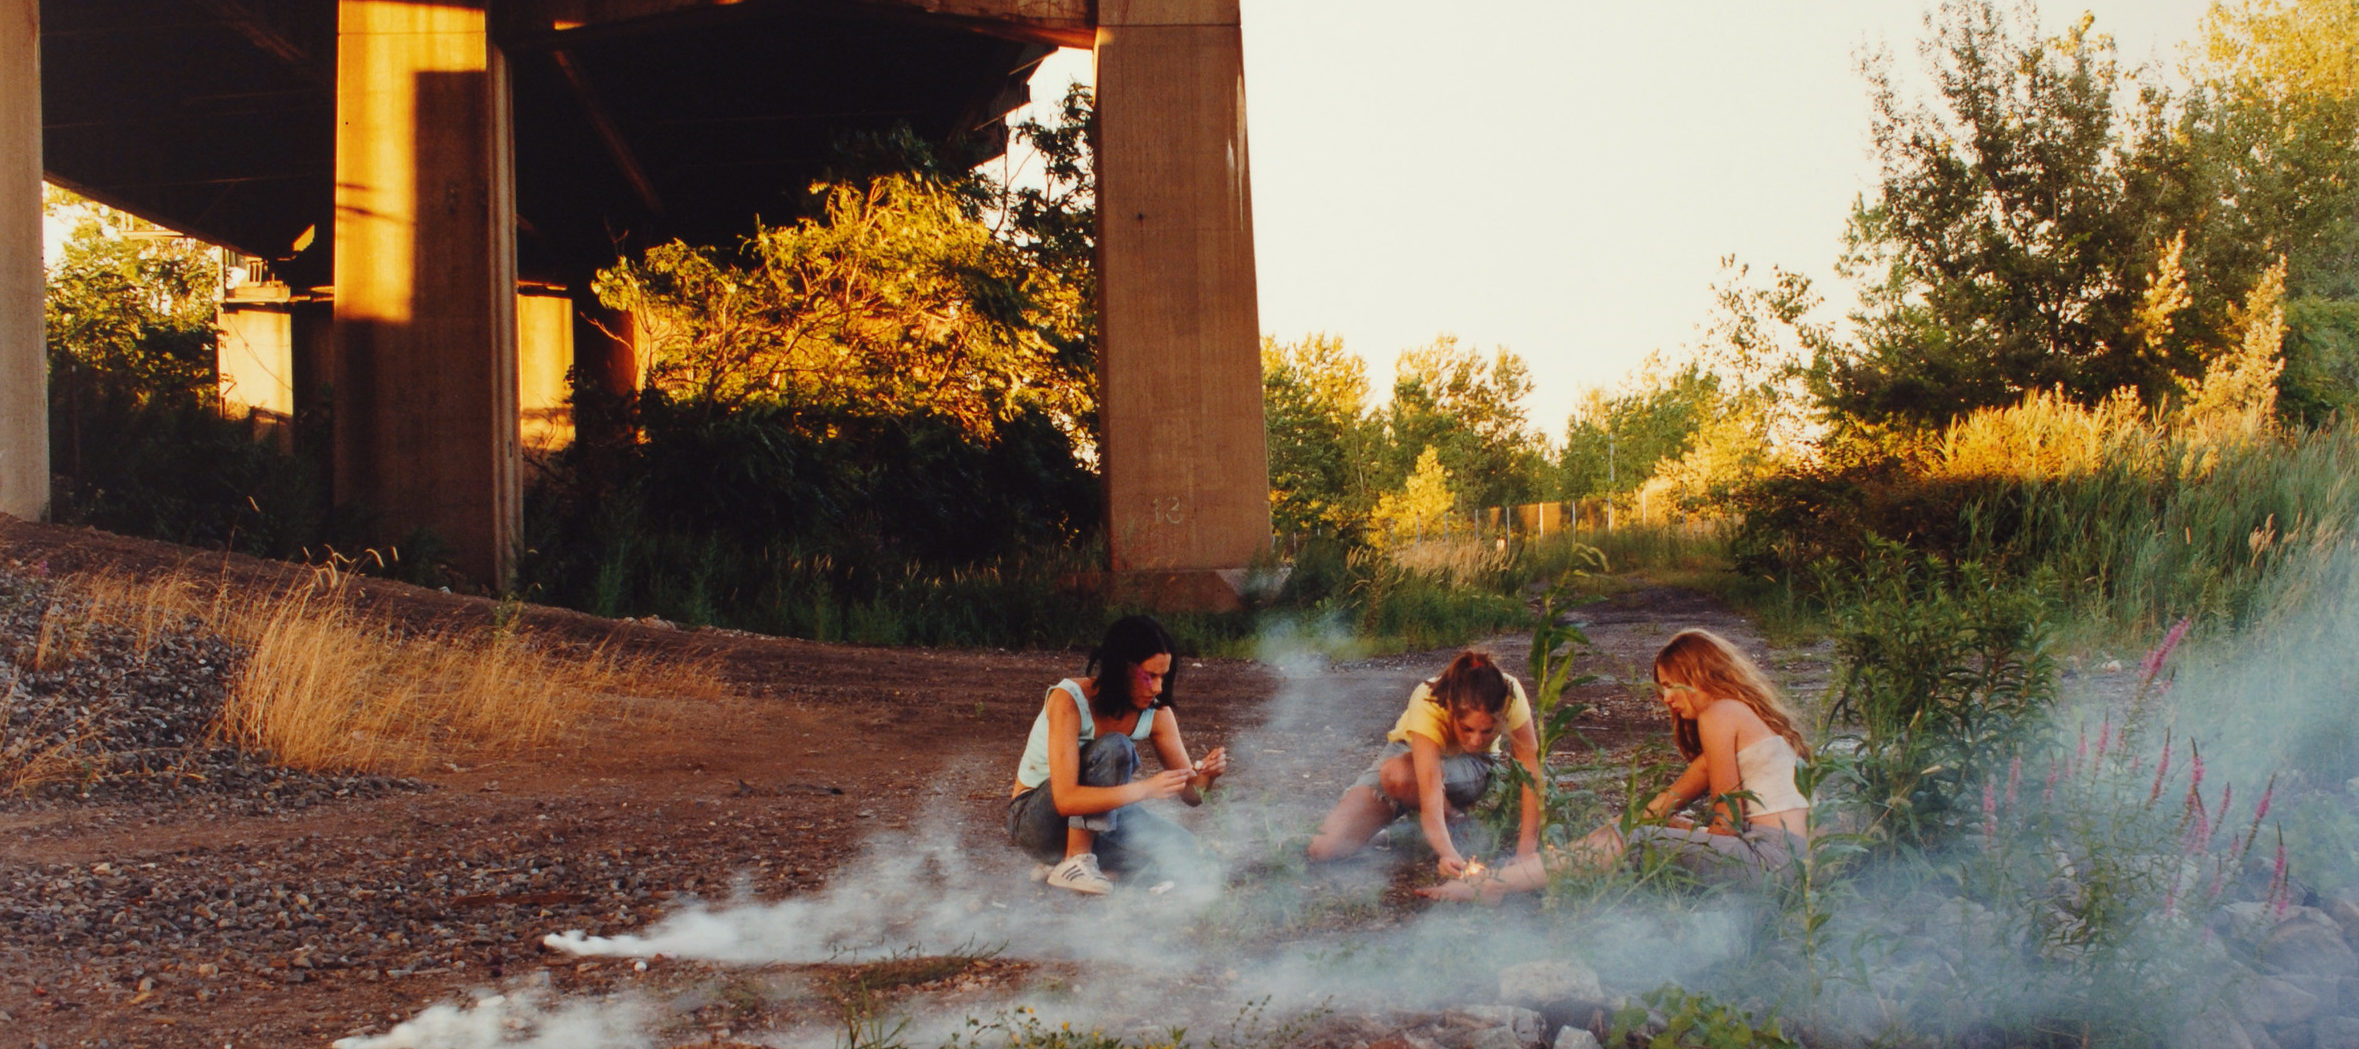 Crouching in the shadow of a highway overpass, three teenage girls with light skin focus intently on lighting smoke bombs.